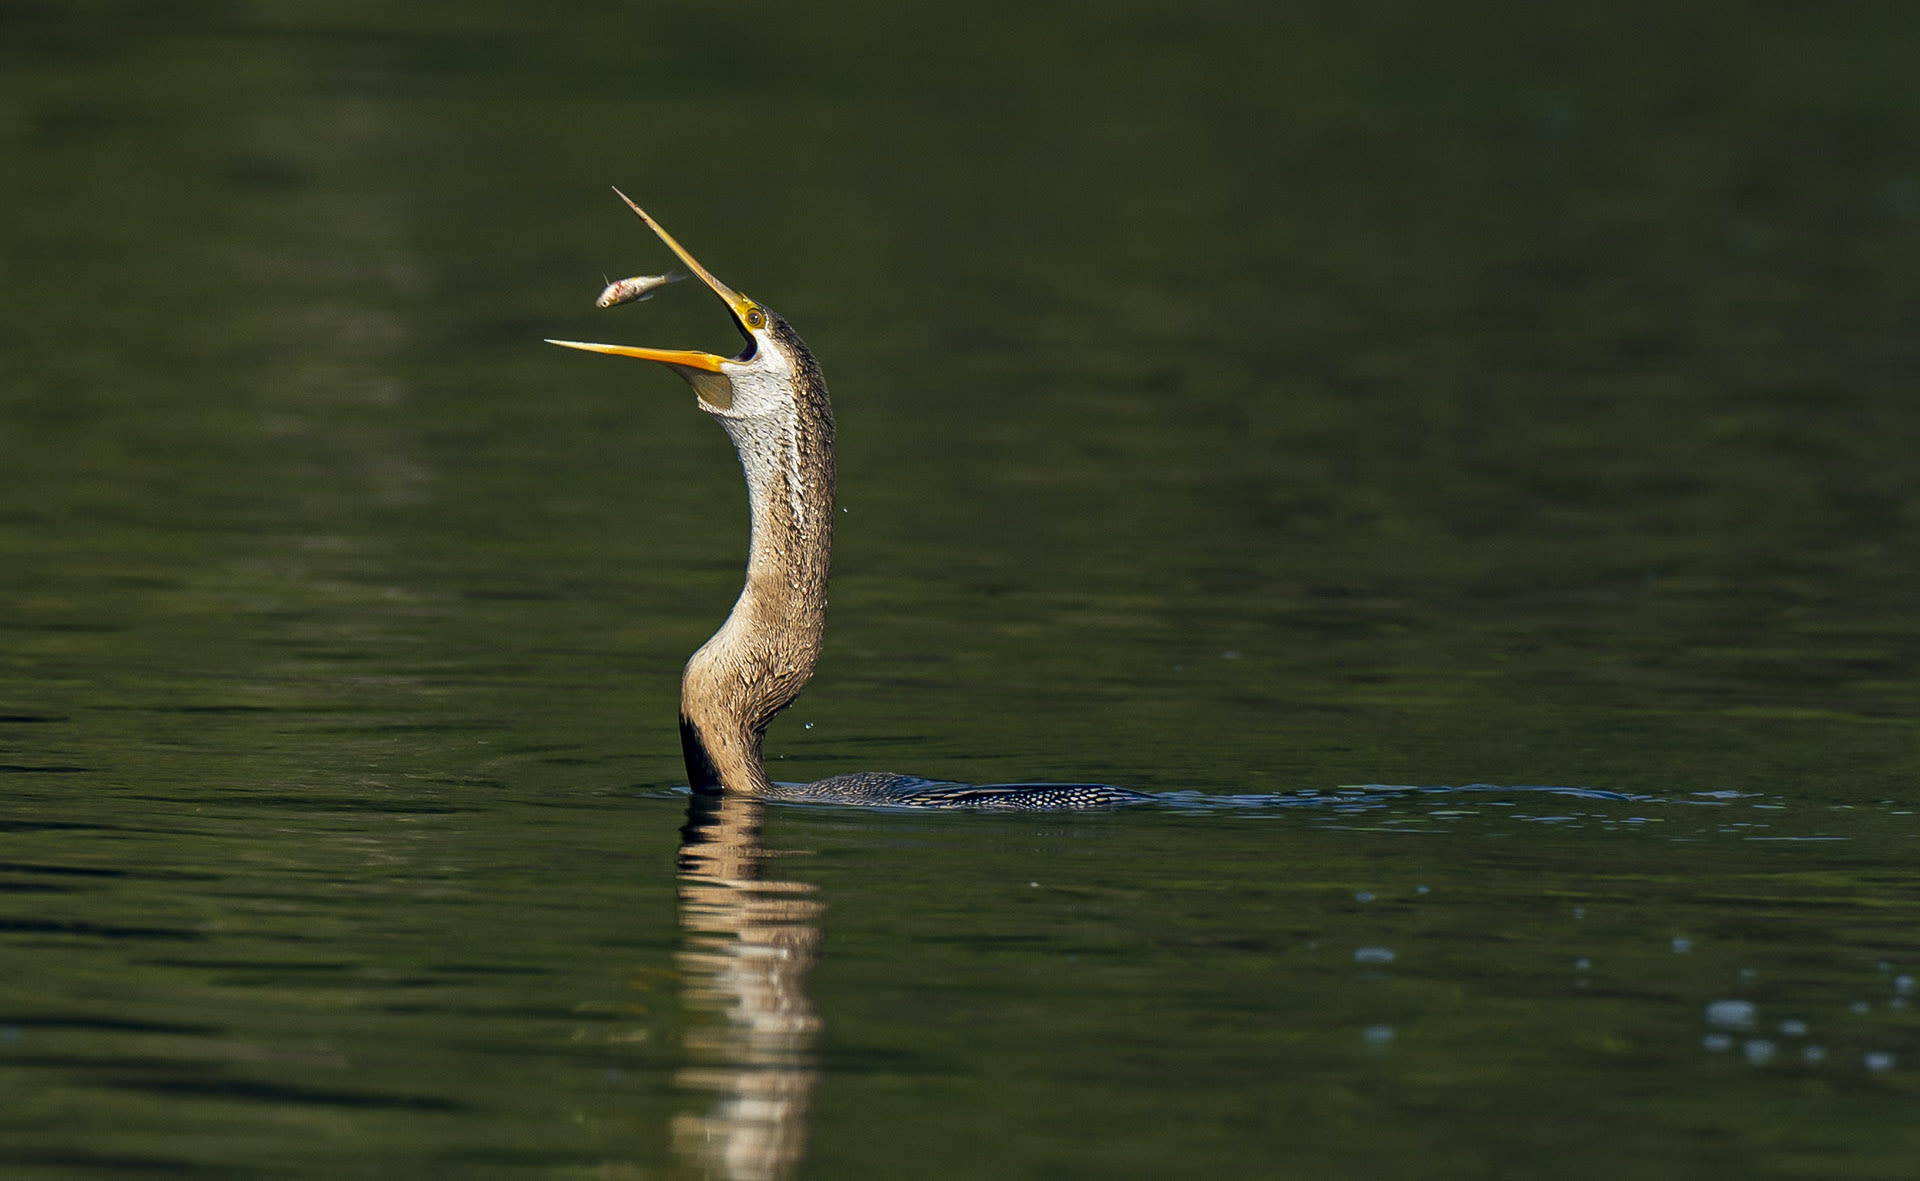 The Indian darter uses its dagger-like beak to spear fish underwater. After securing a catch, the bird tosses the fish into the air and swallows it whole.